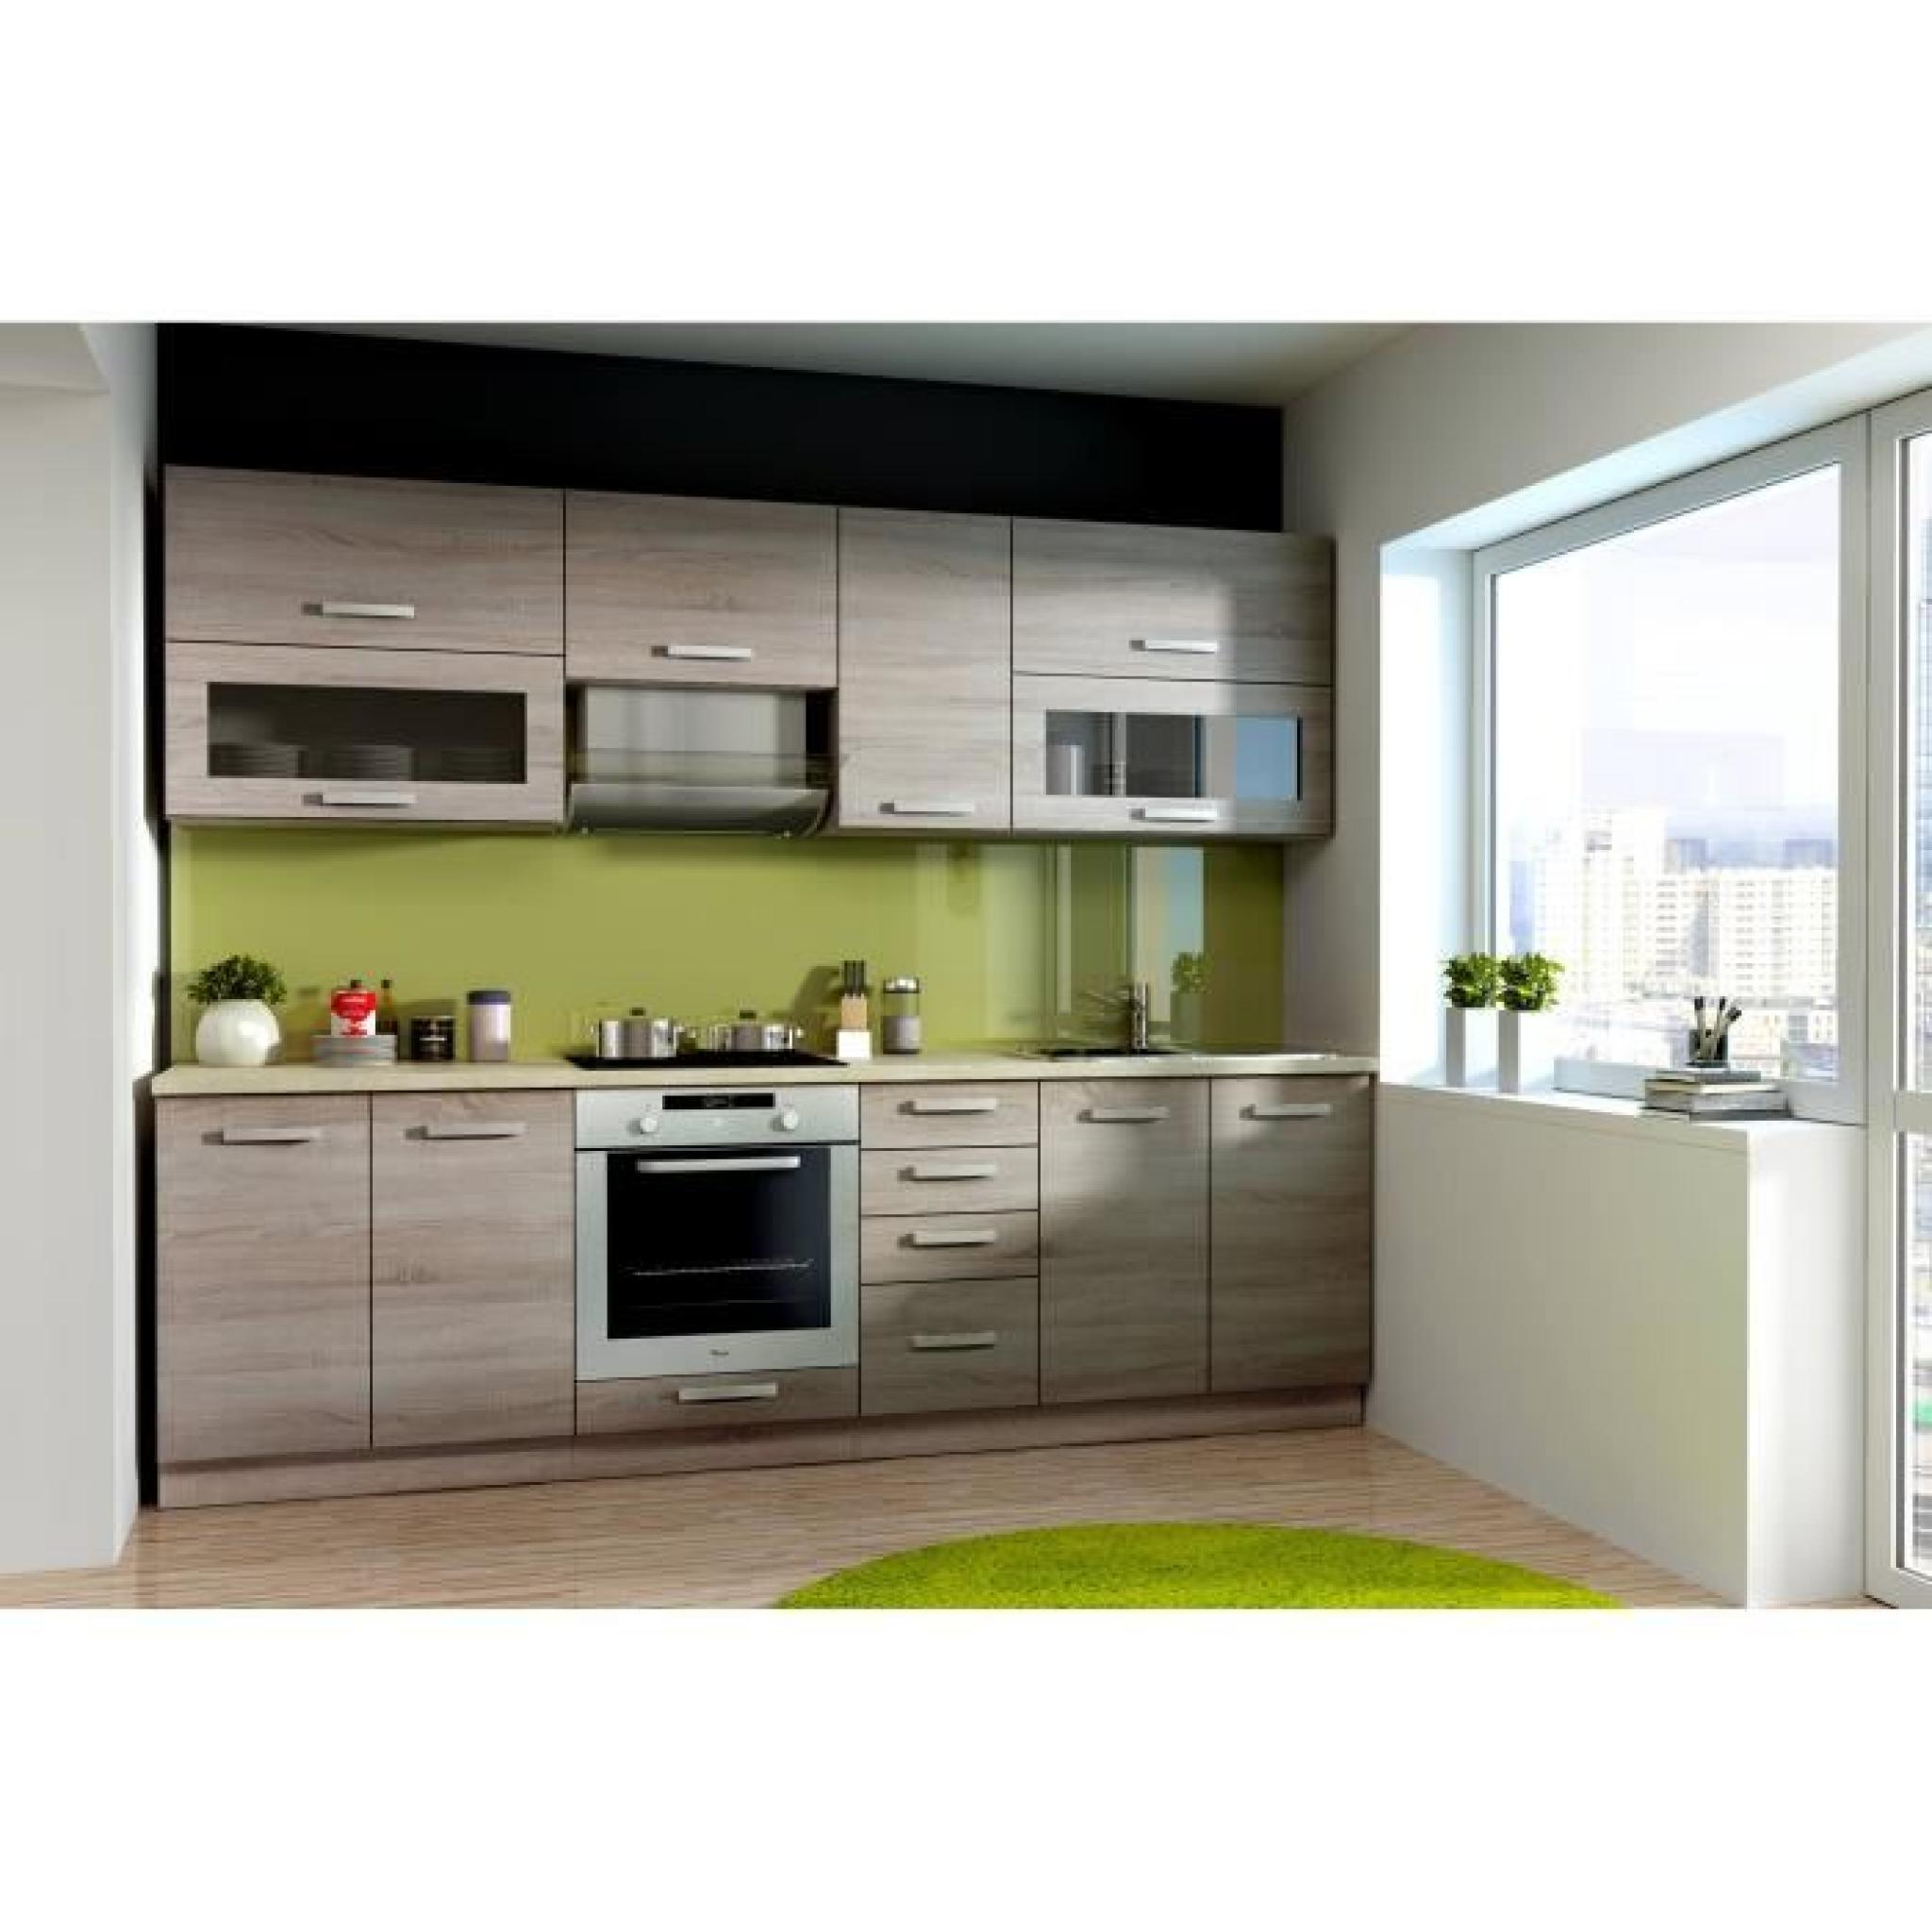 lassen cuisine compl te 2m60 d cor ch ne sonoma achat vente cuisine complete pas cher. Black Bedroom Furniture Sets. Home Design Ideas